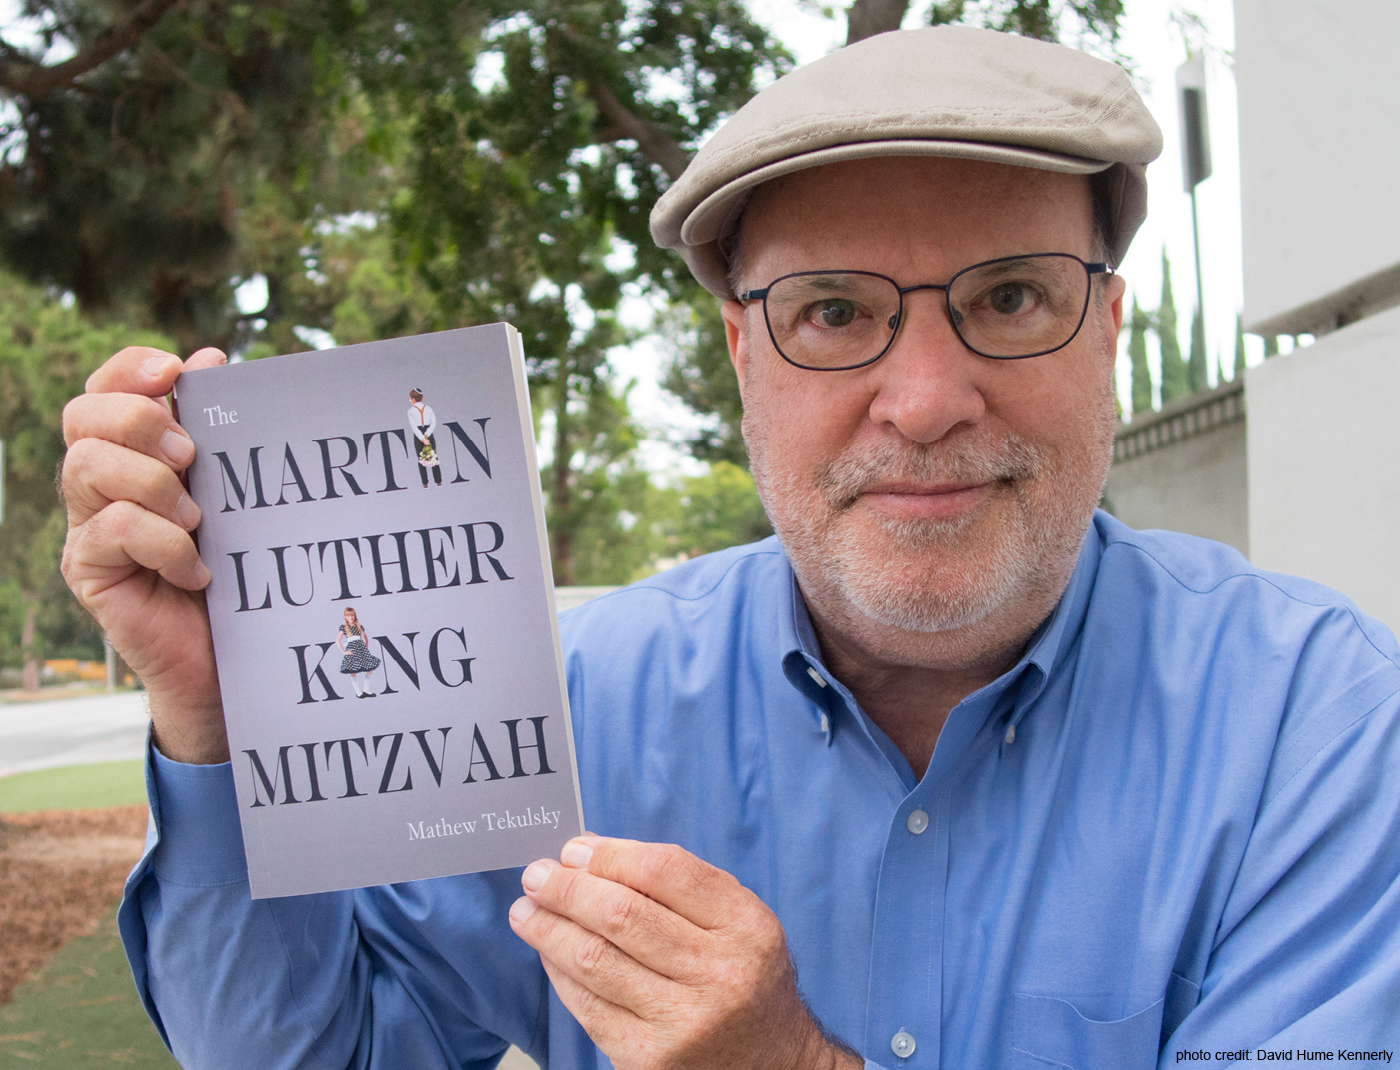 Mathew Tekulsky with MLK book